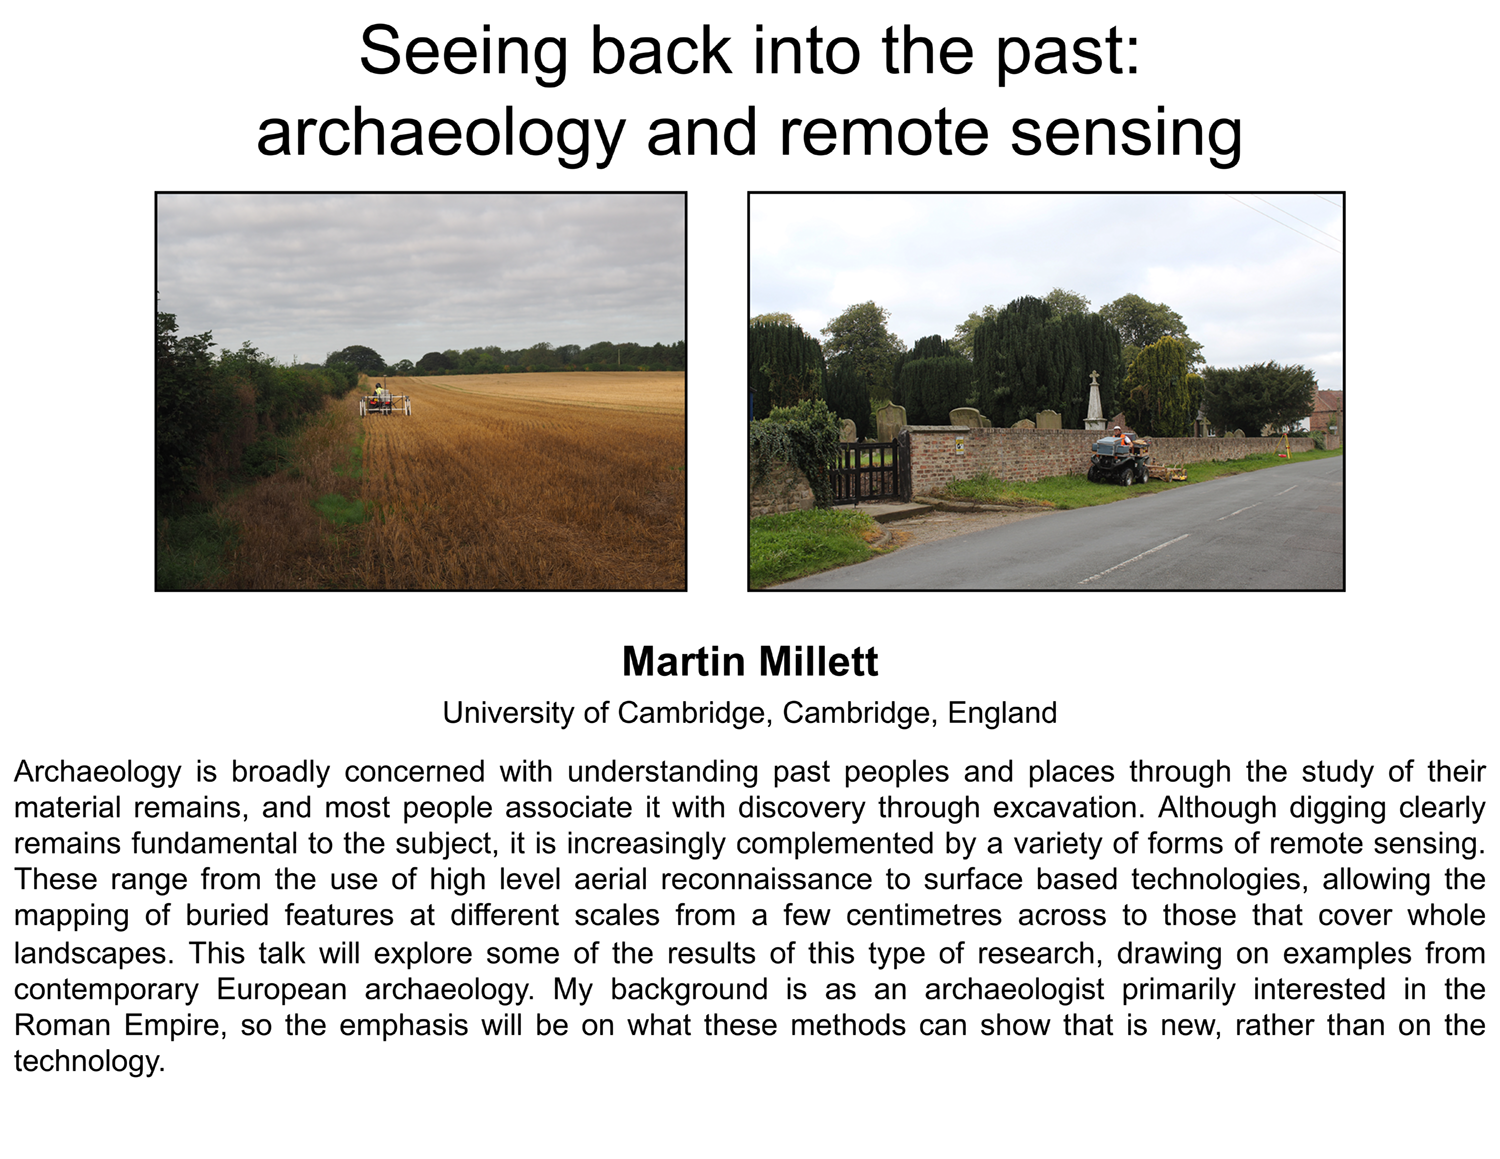 Plenary: Seeing back into the past: archaeology and remote sensing